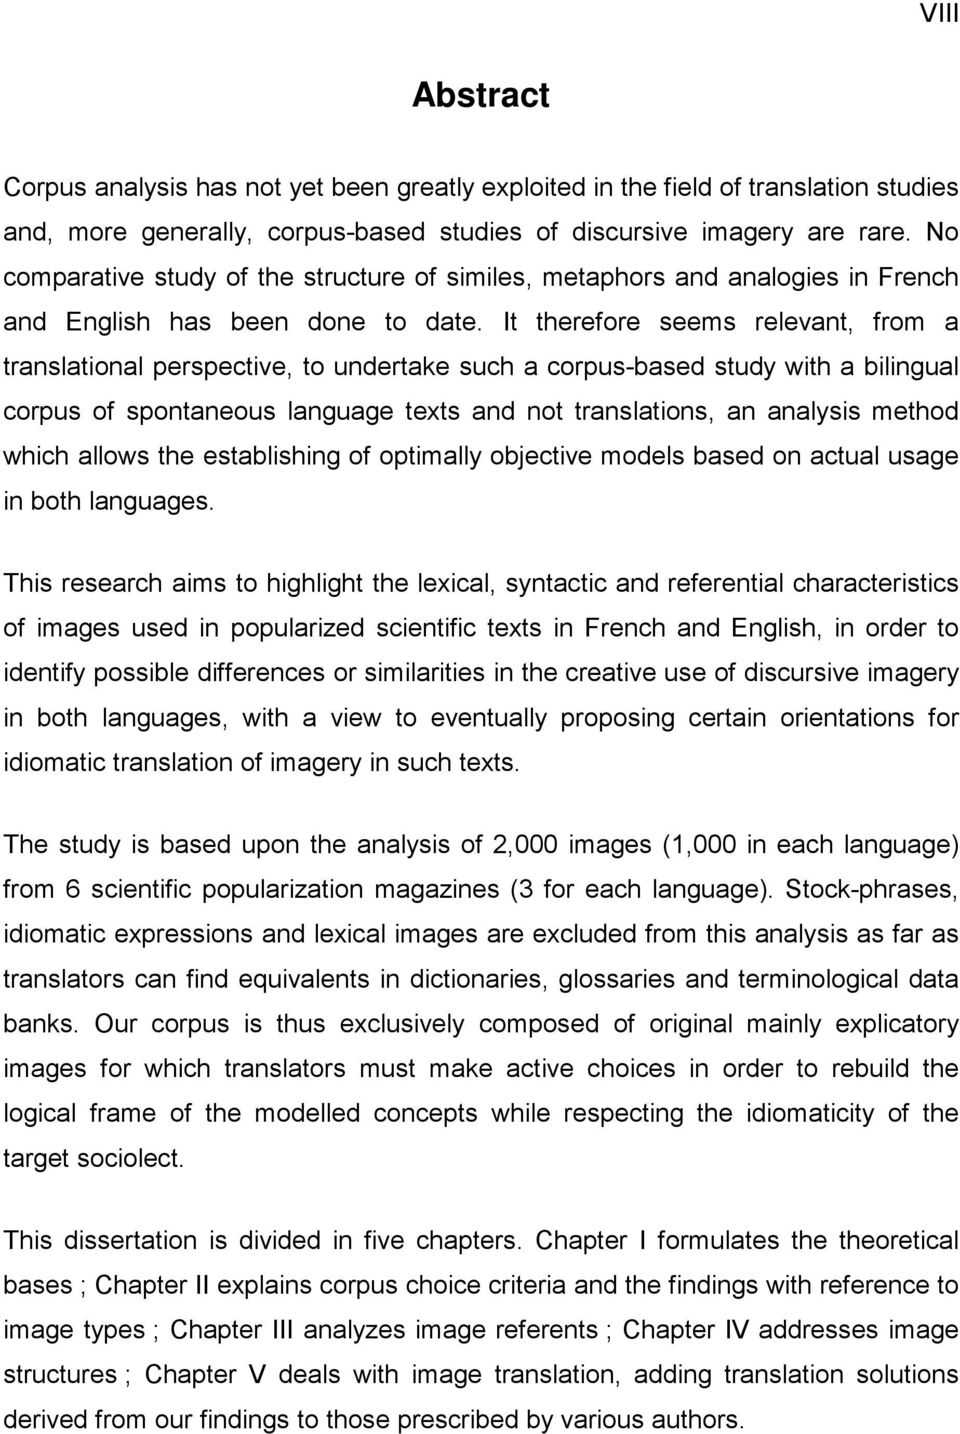 It therefore seems relevant, from a translational perspective, to undertake such a corpus-based study with a bilingual corpus of spontaneous language texts and not translations, an analysis method